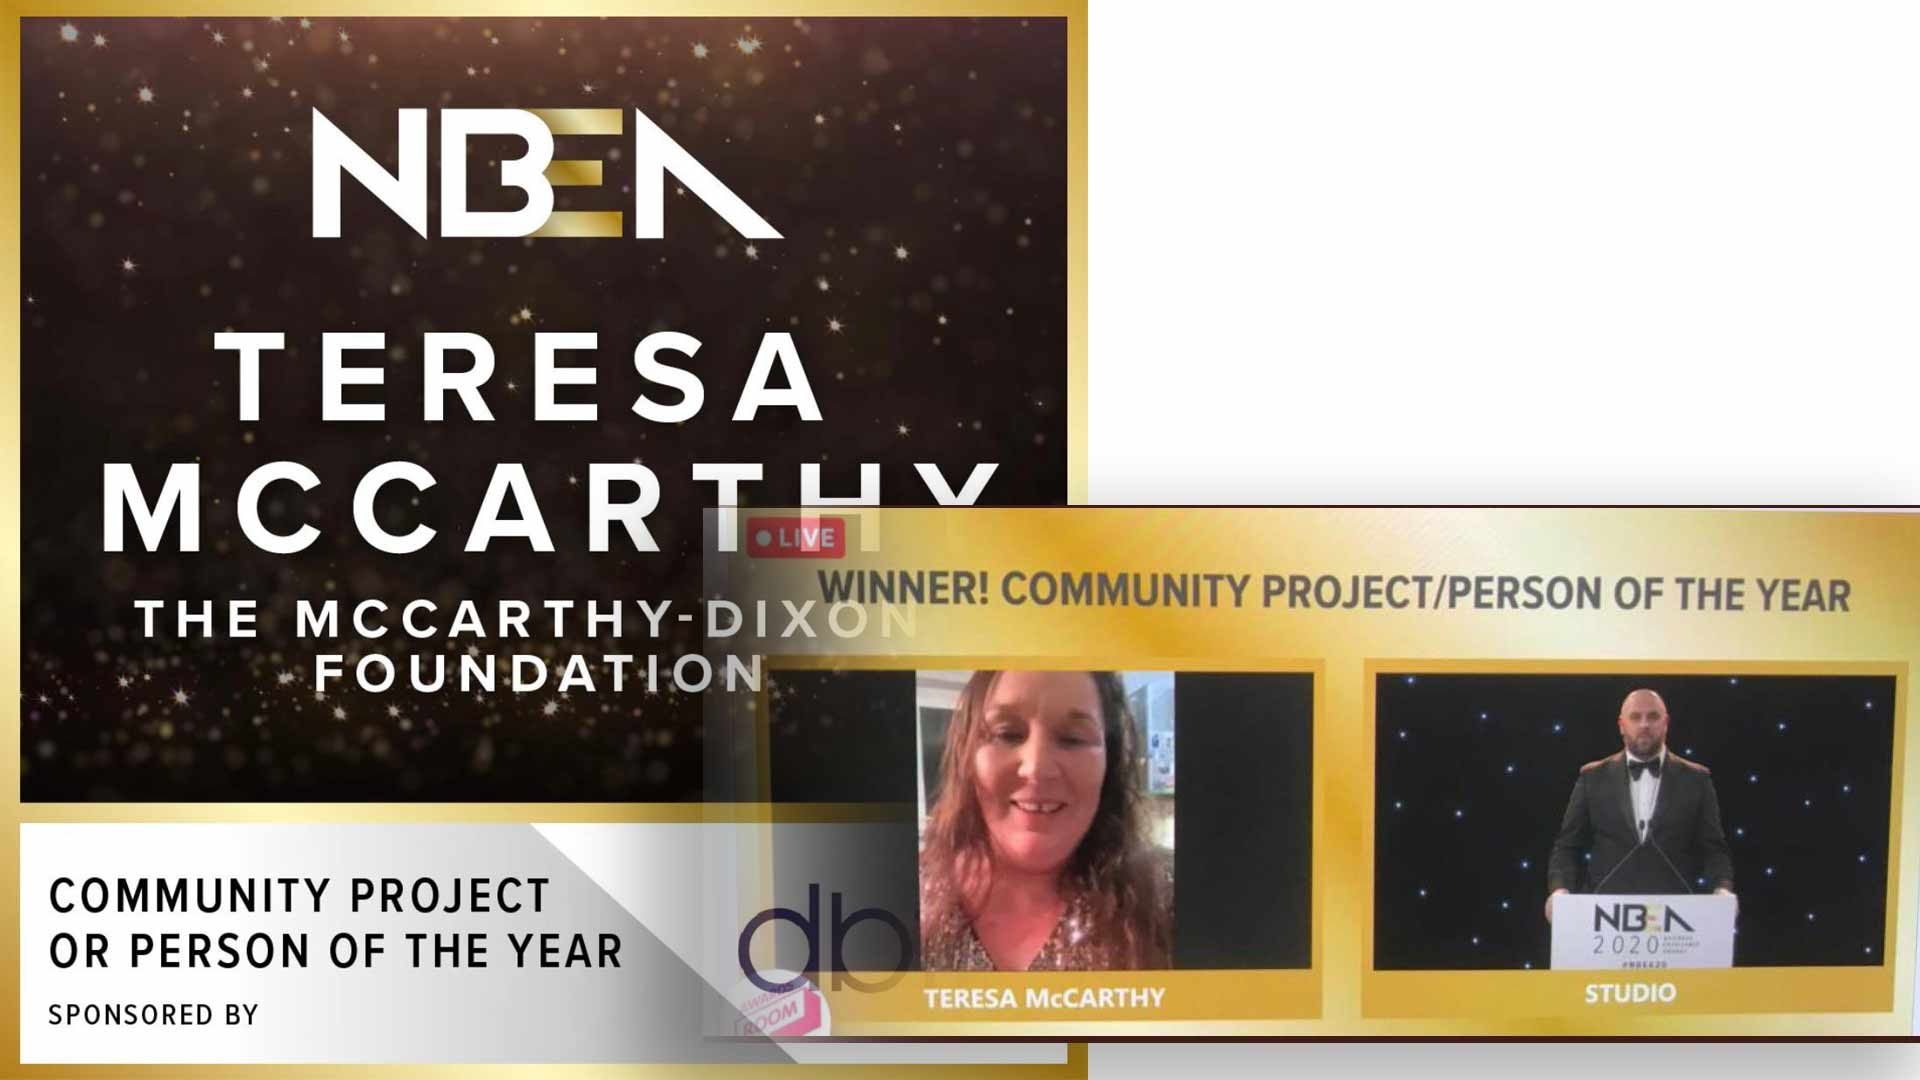 NBEA Community person or project of the year winner 2020